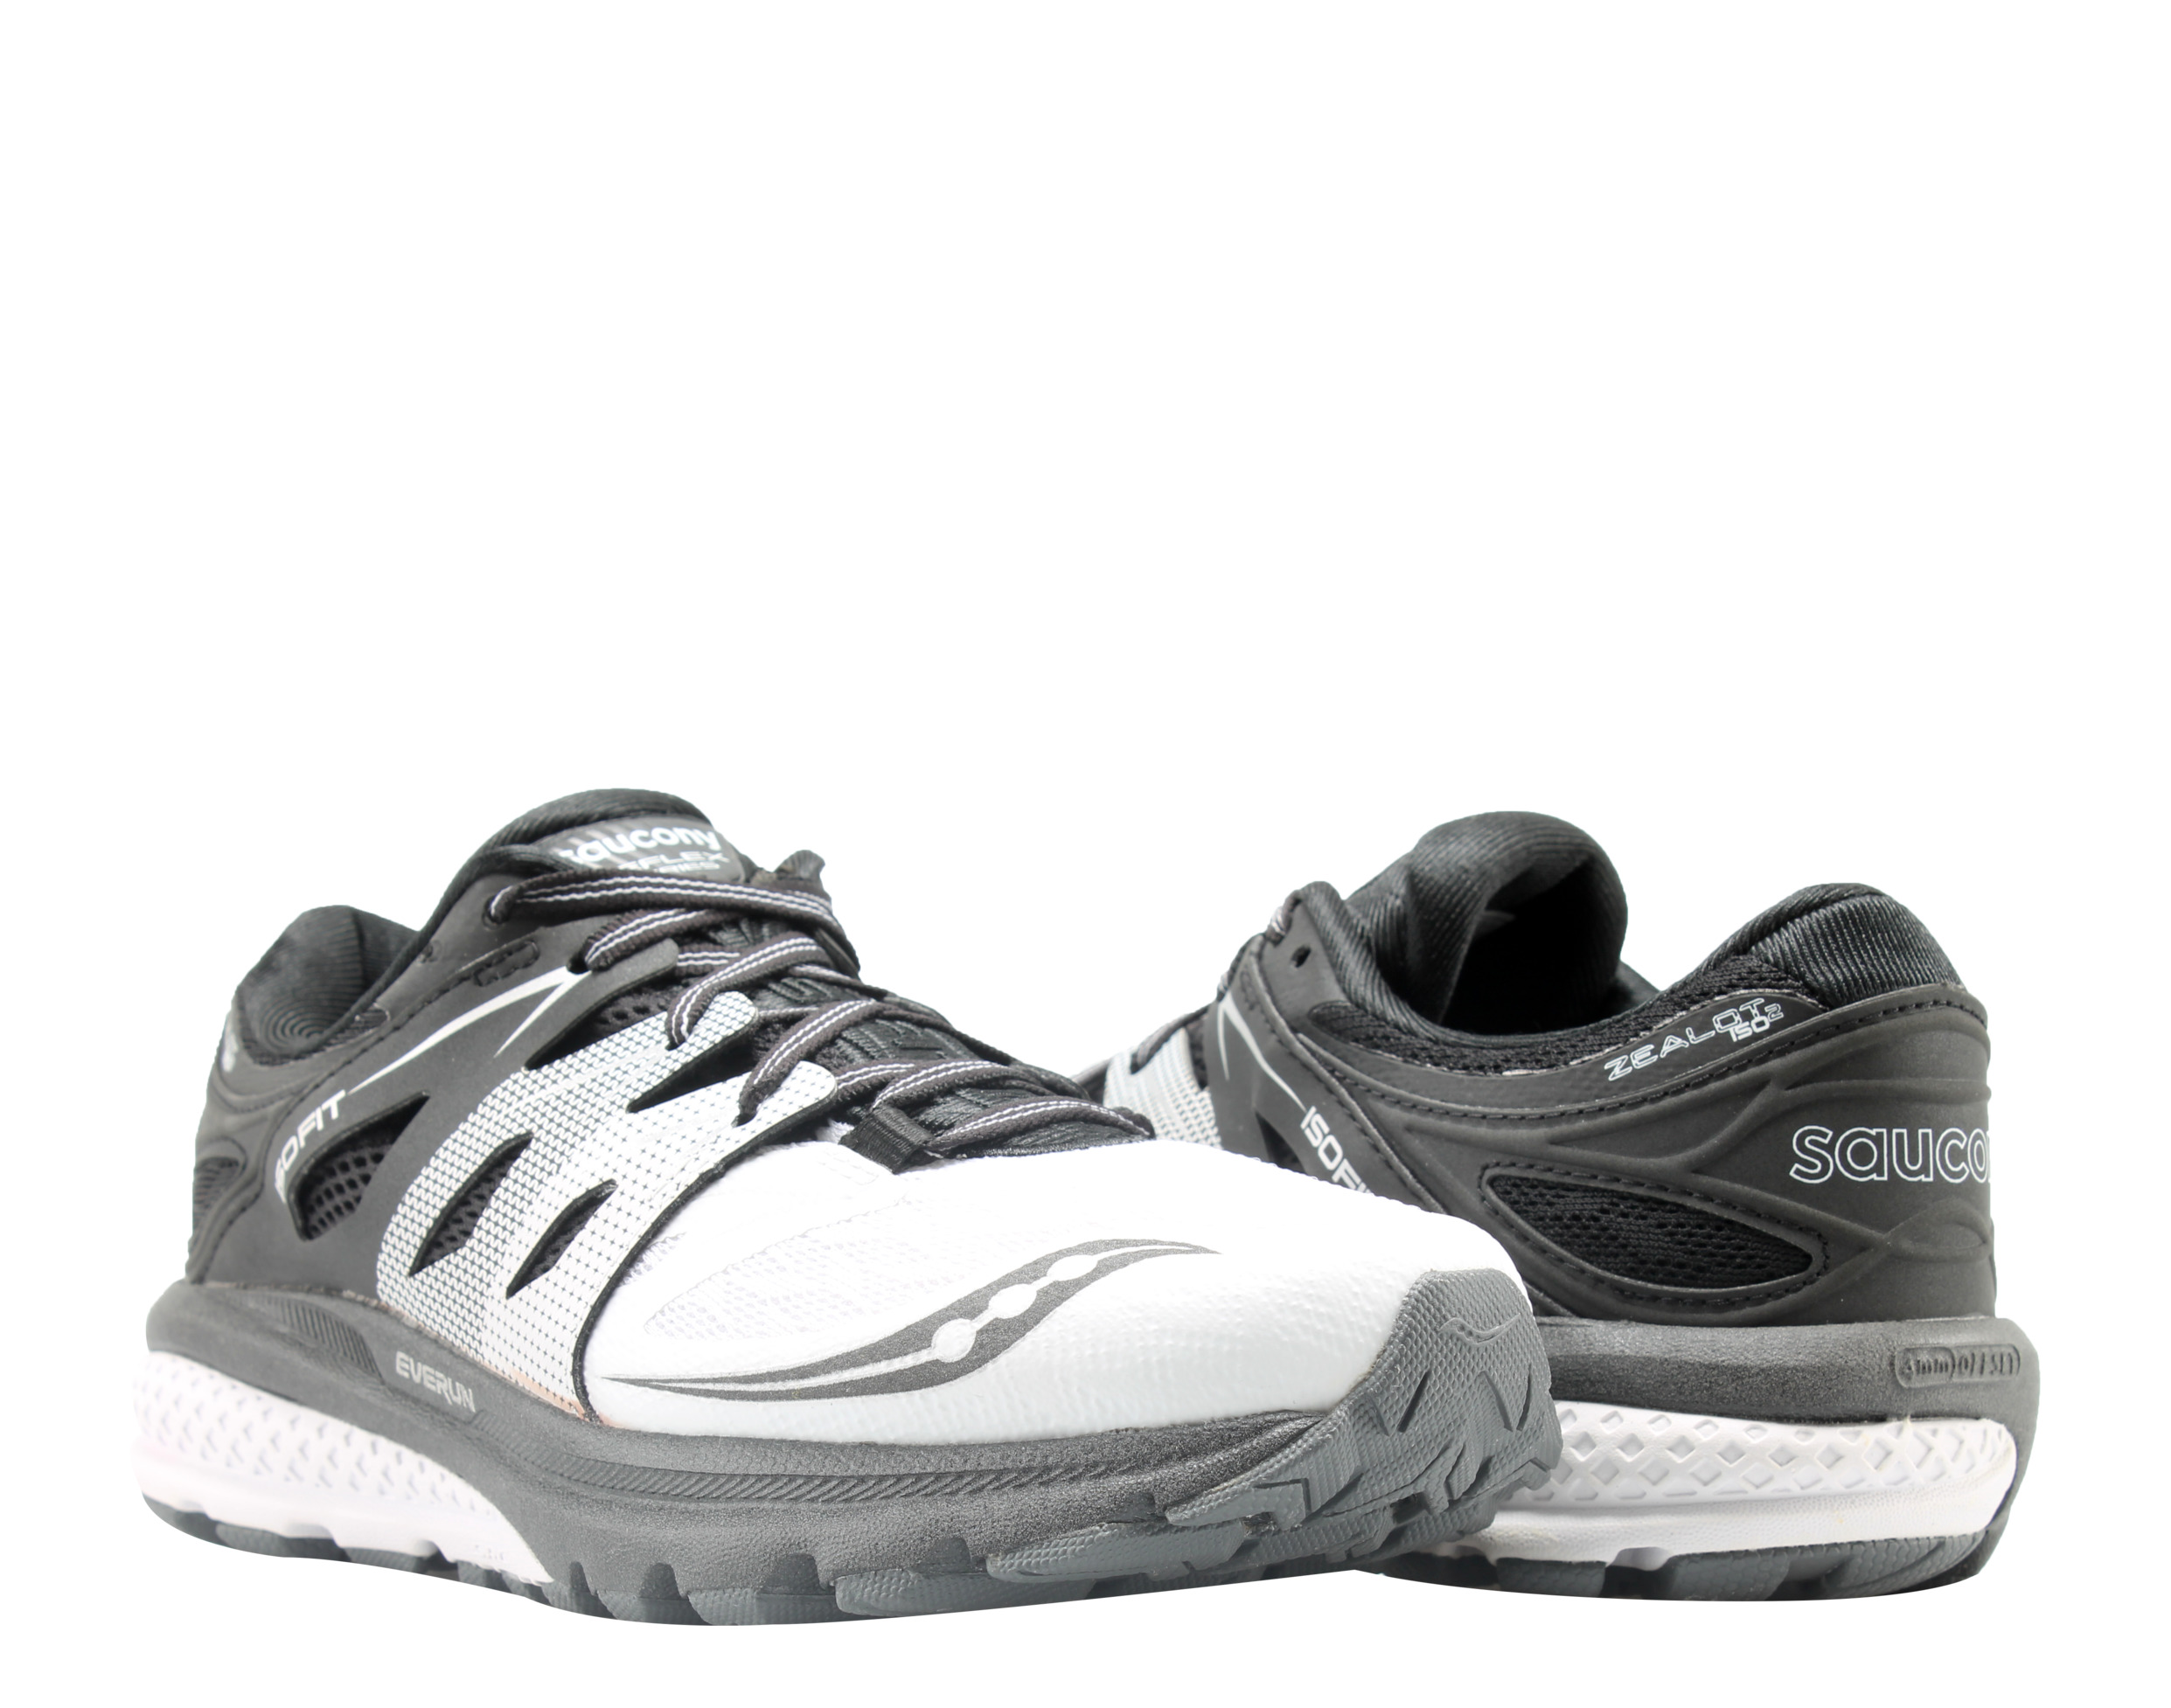 Saucony Zealot ISO 2 Reflex White Black Silver Women's Running Shoes S10332-1 by